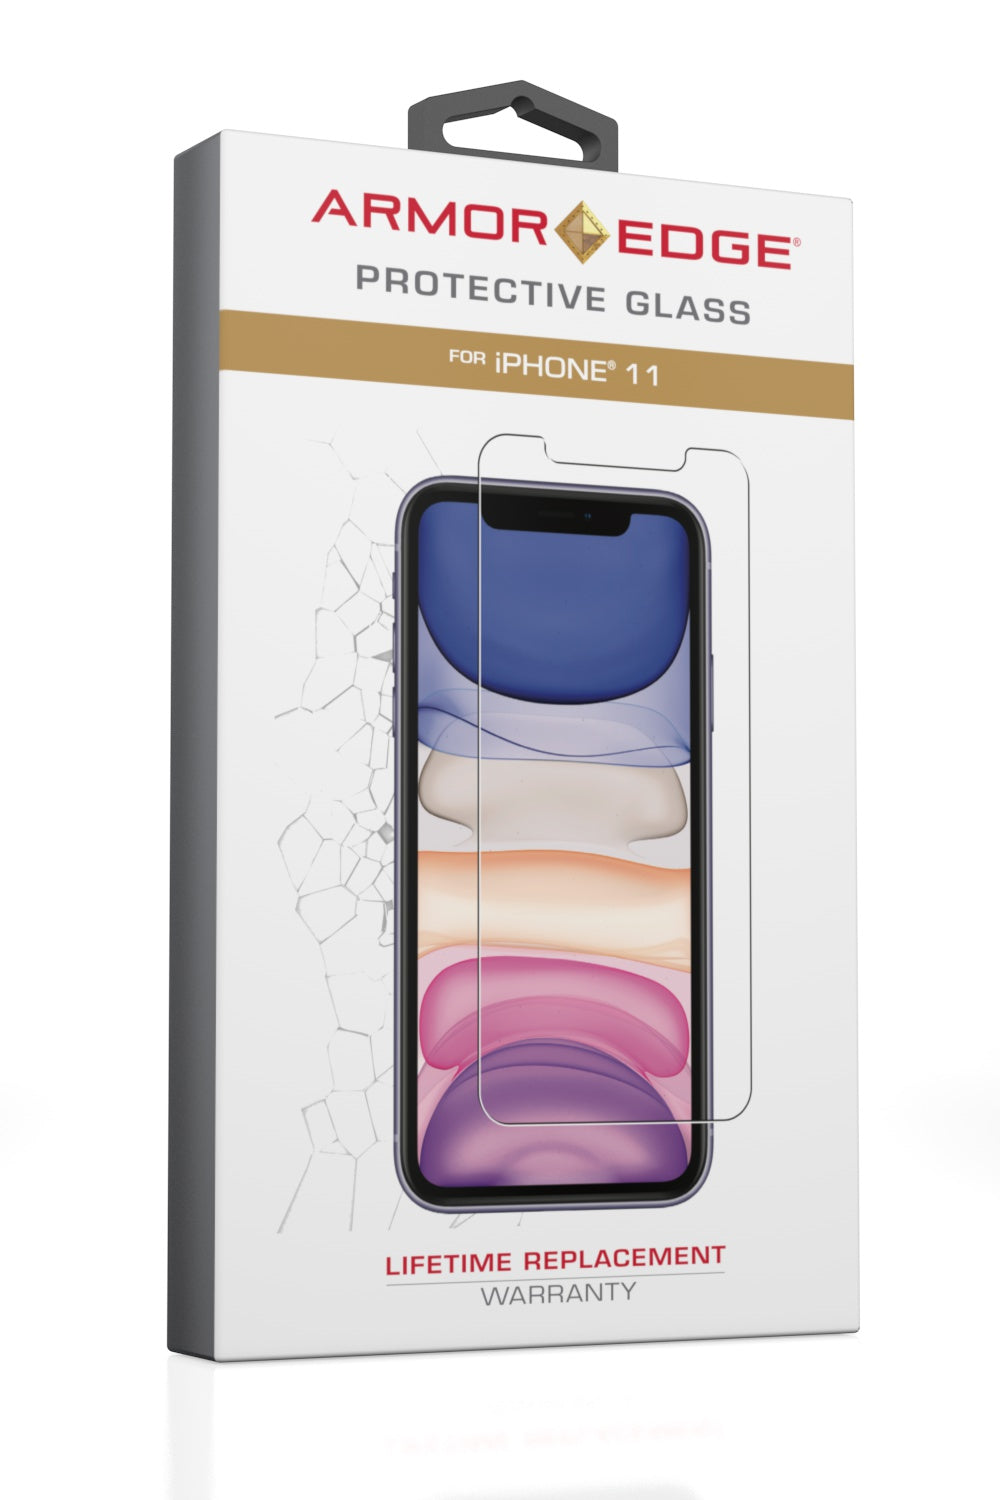 Armor Edge - Protective Glass for iPhone 11